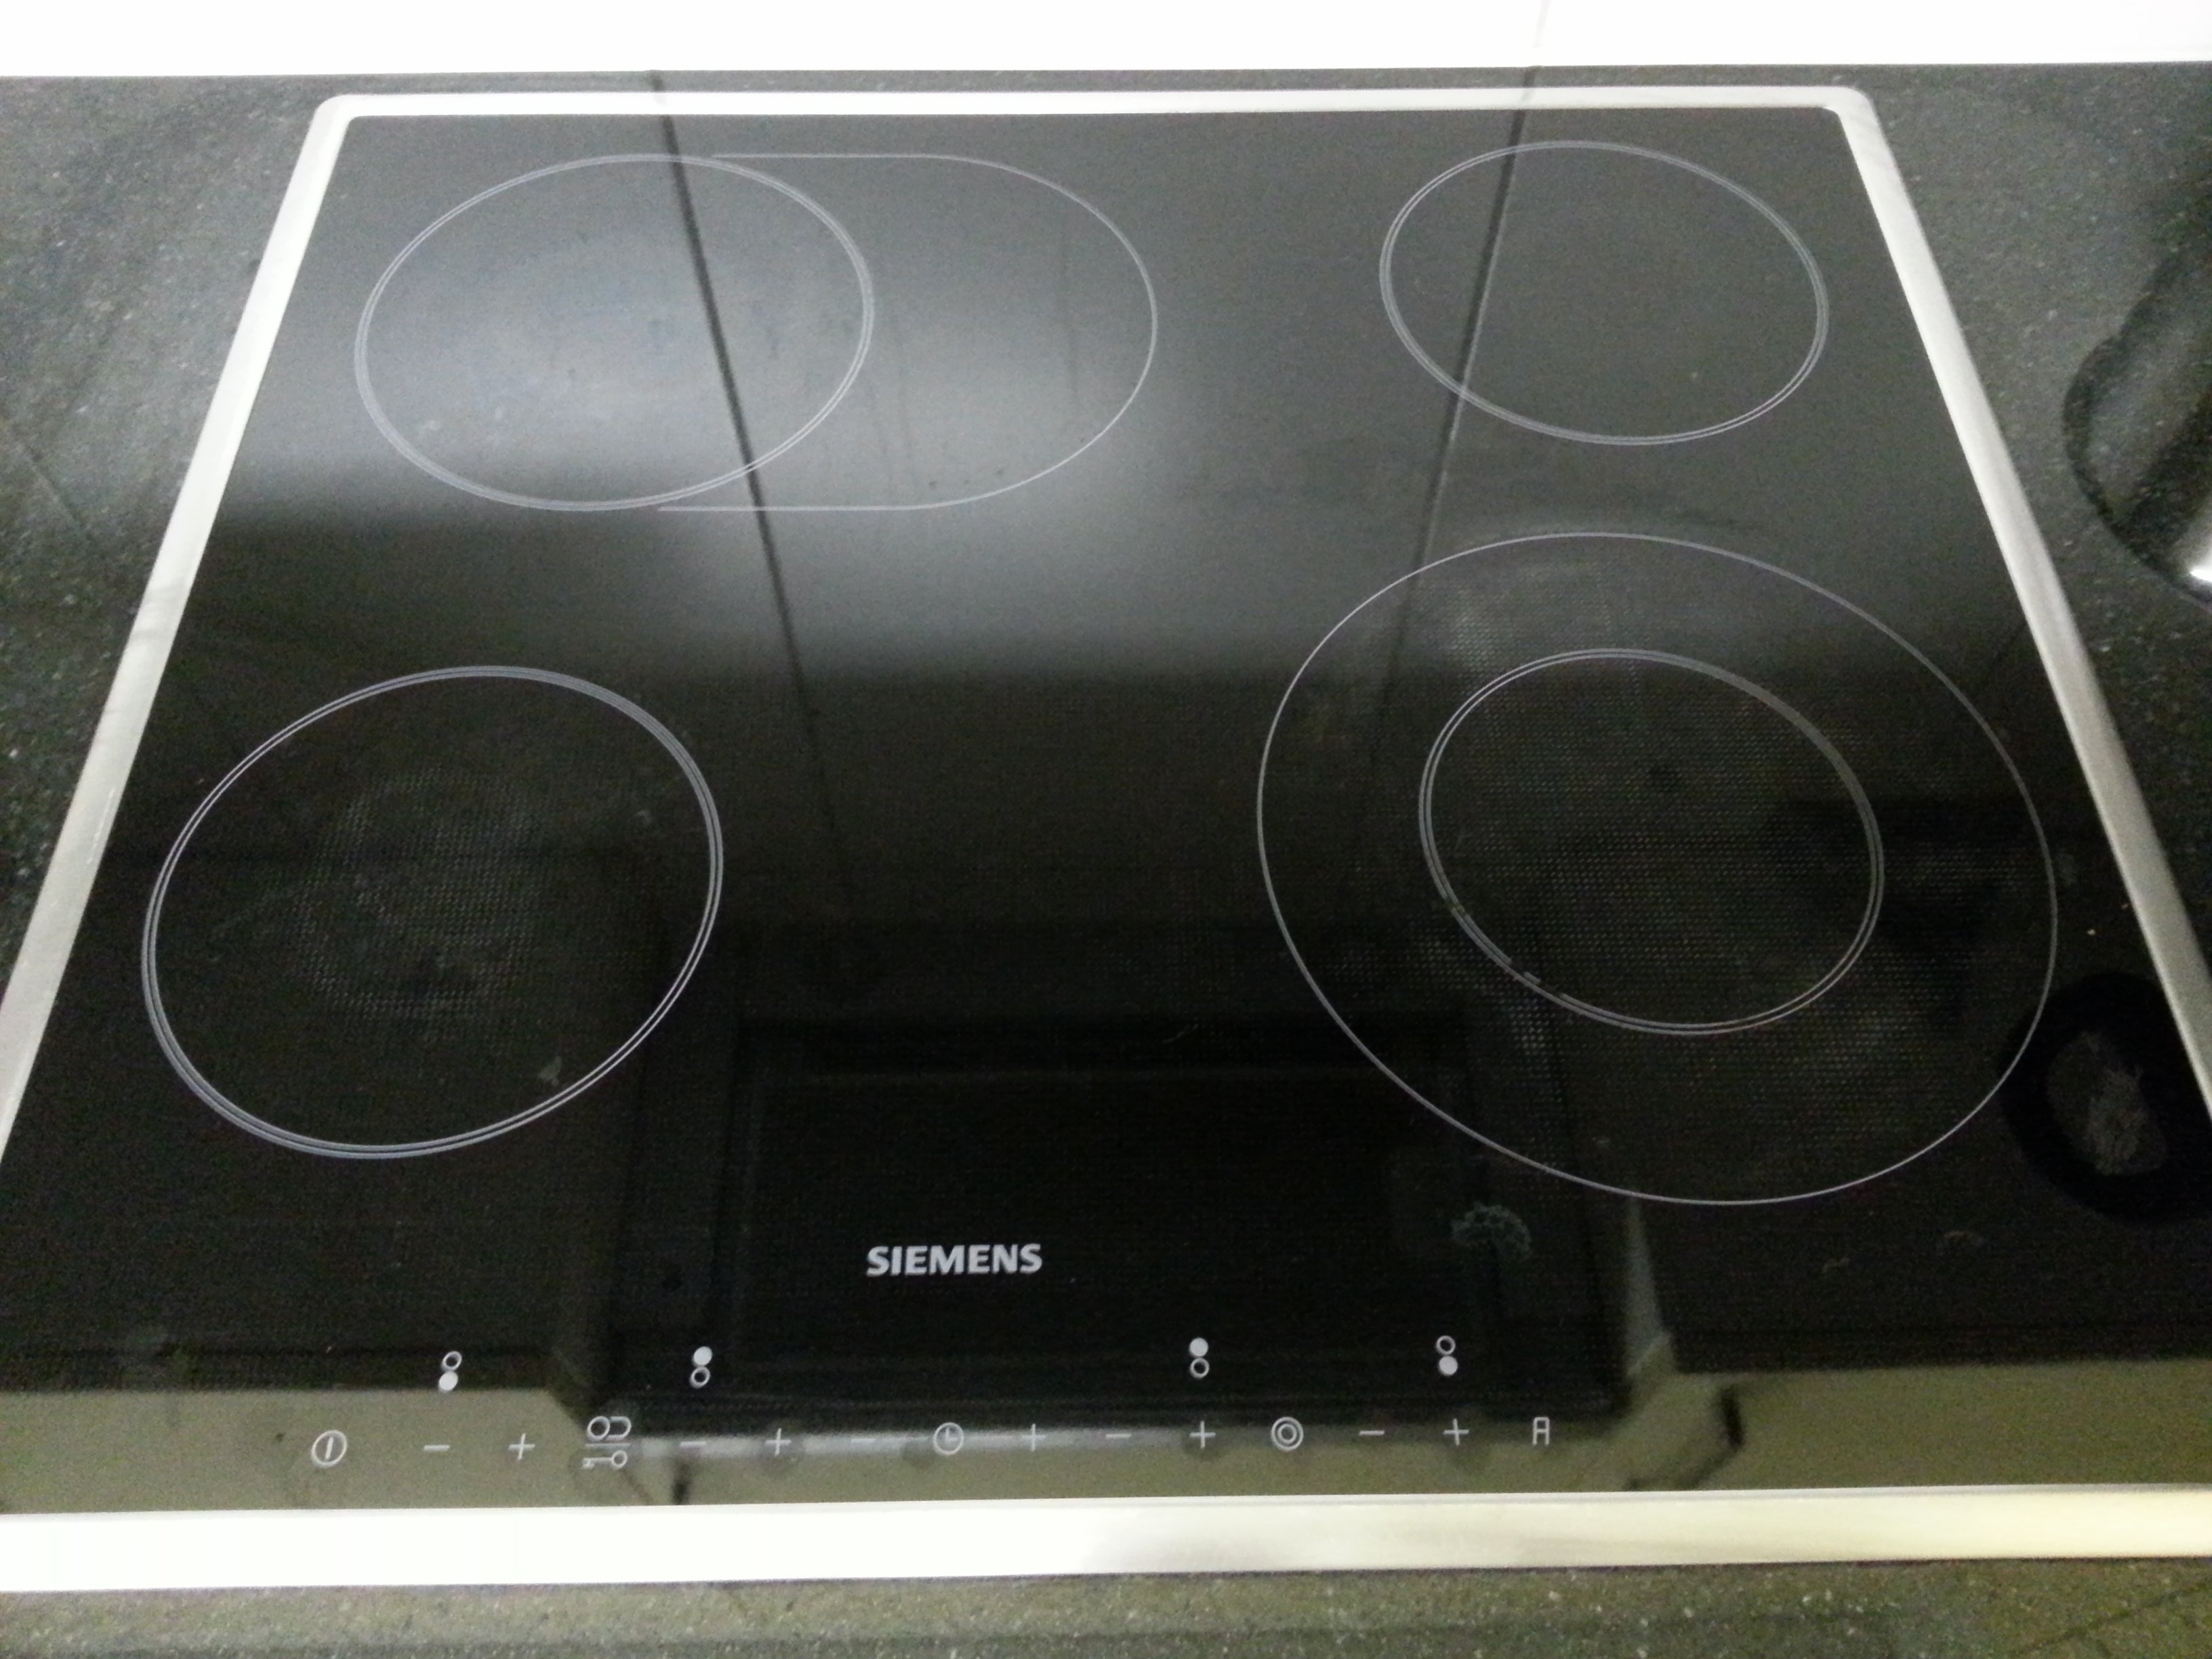 I Have A Siemens Ceramic Cooker Top The Key Symbol Is Illuminated